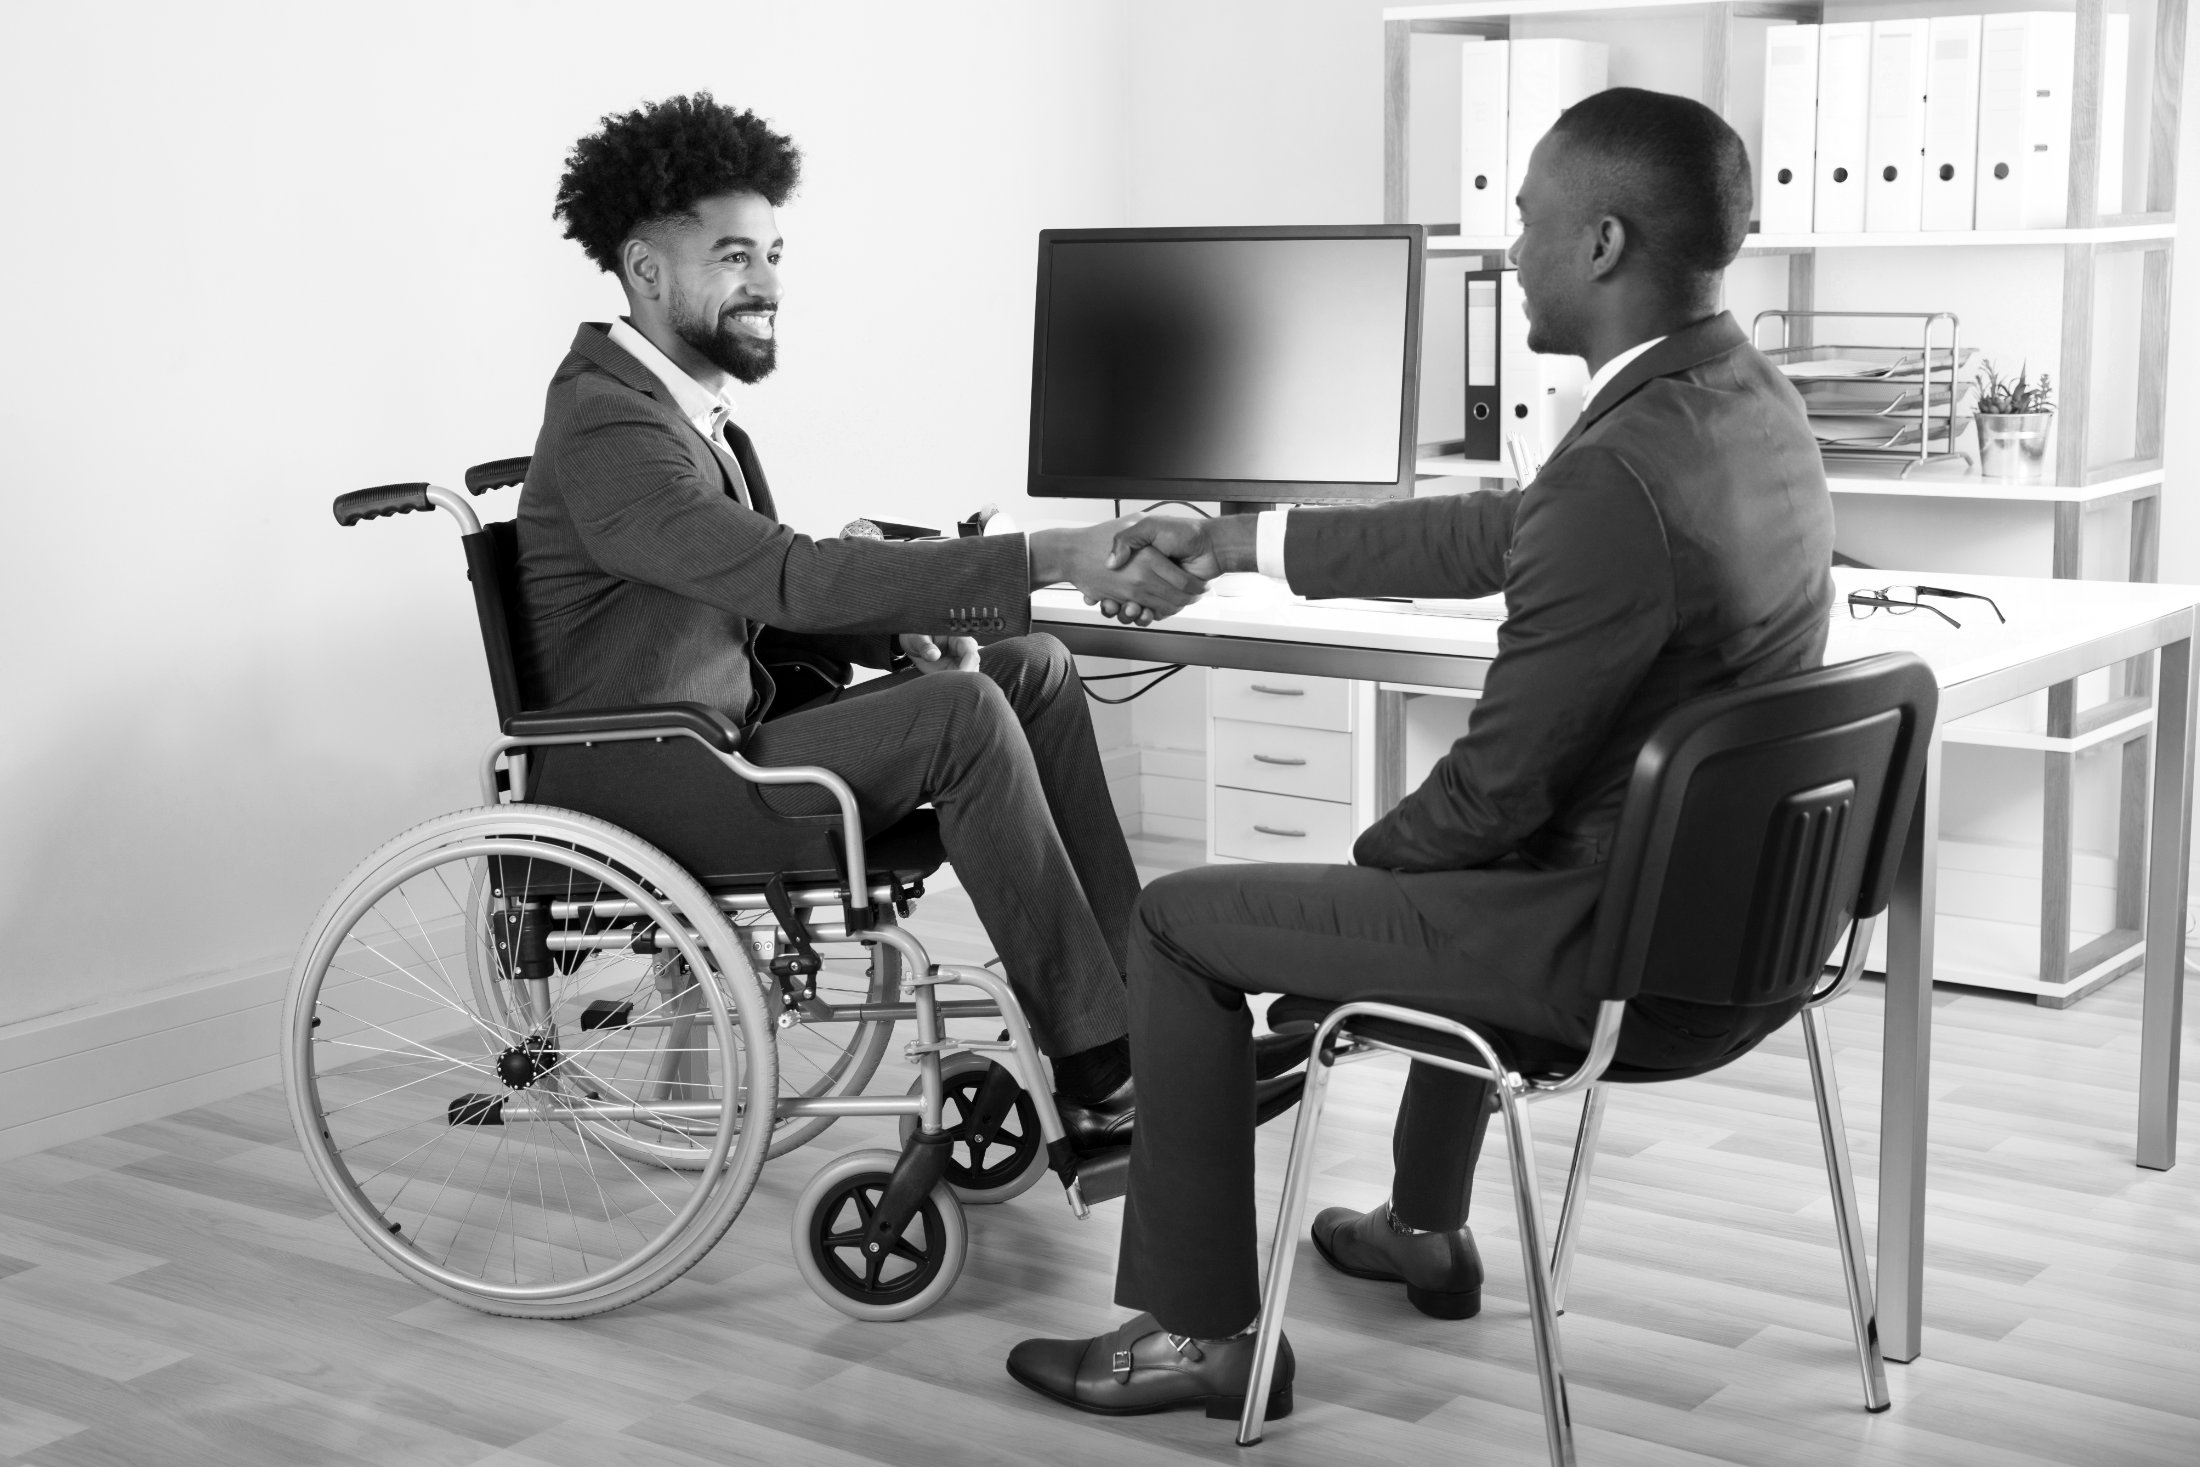 Man in wheelchair shaking hands with sitting man full